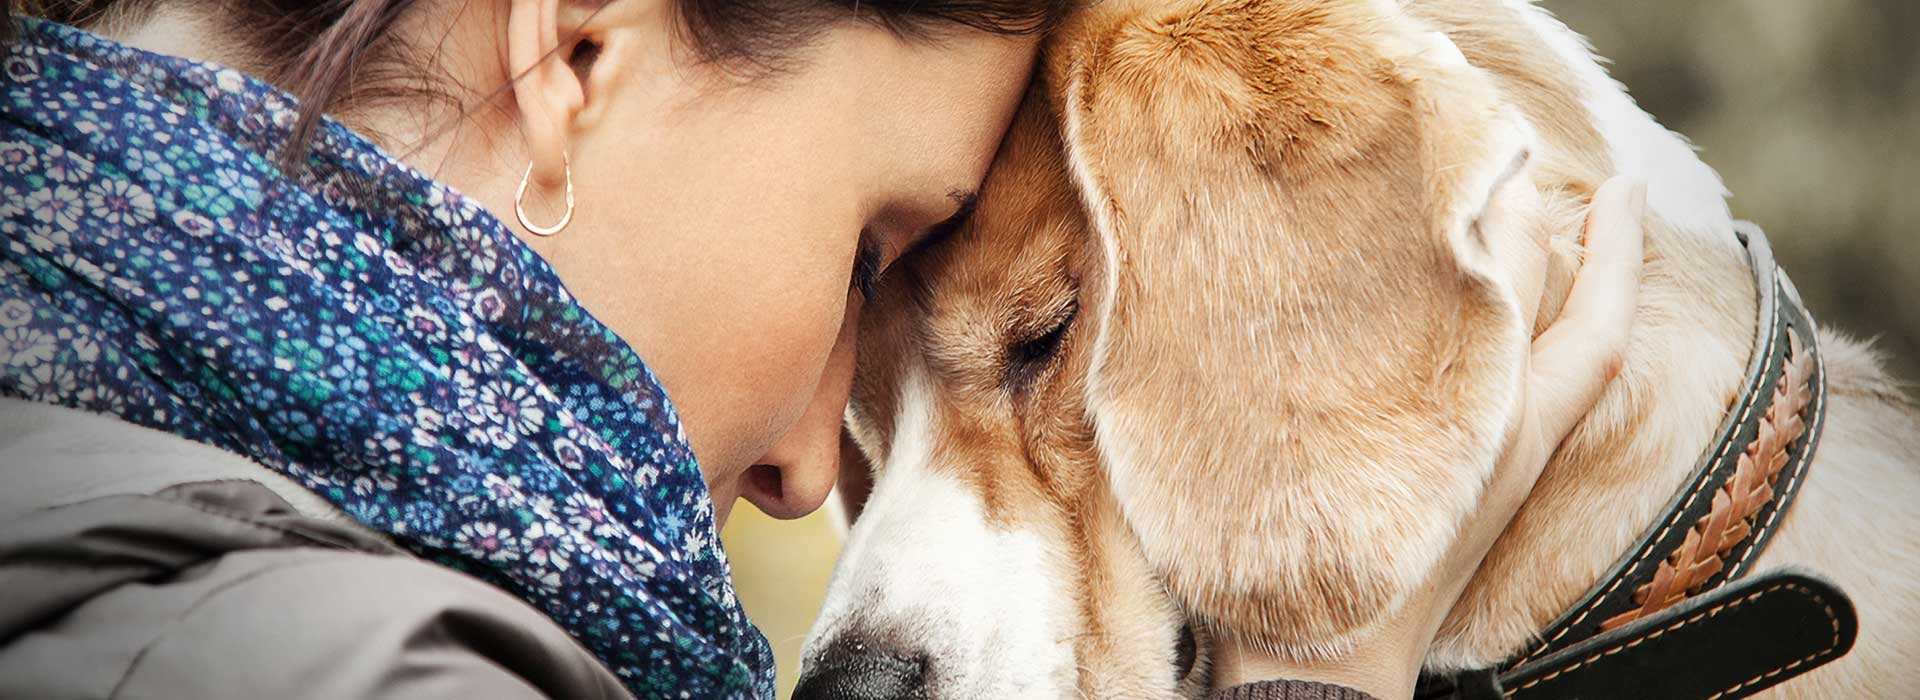 bigstock-Woman-With-Her-Dog-web